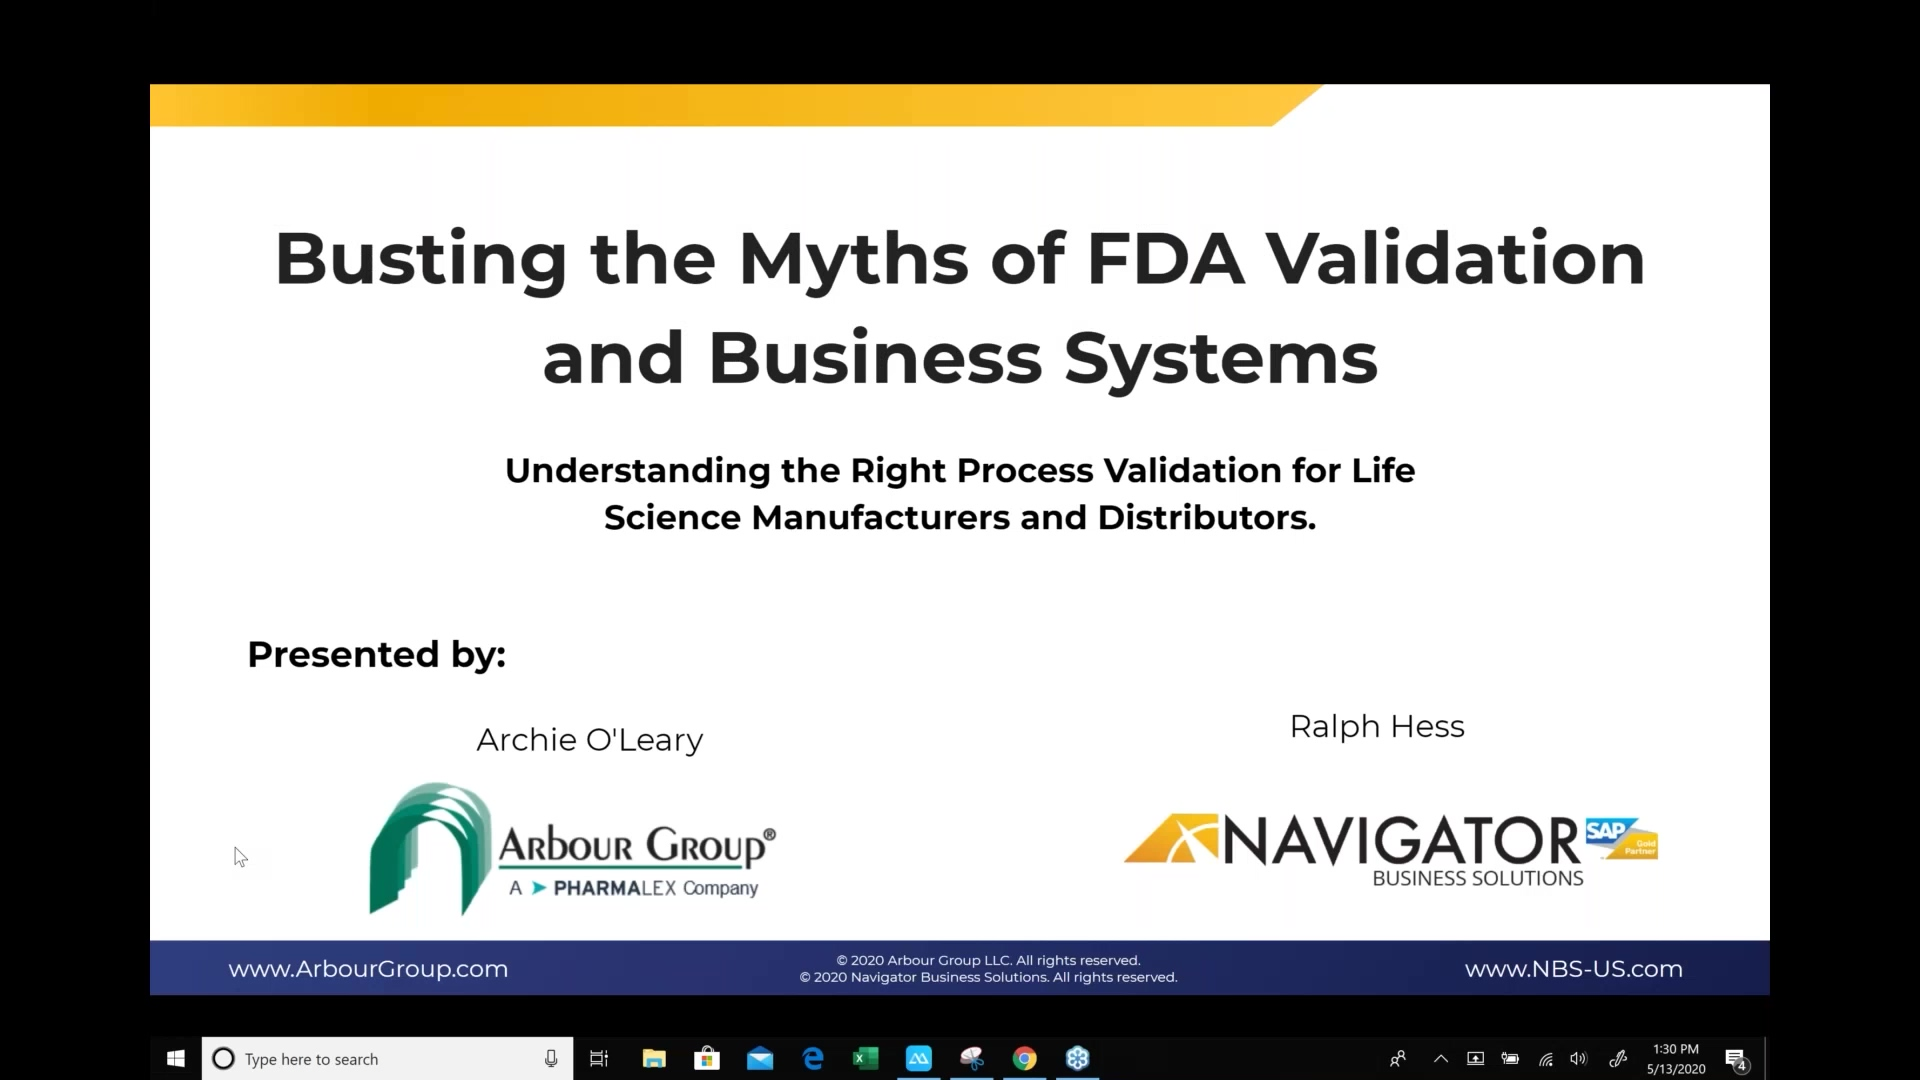 Busting the Myths of FDA Validation and Business Systems_13May2020_cut